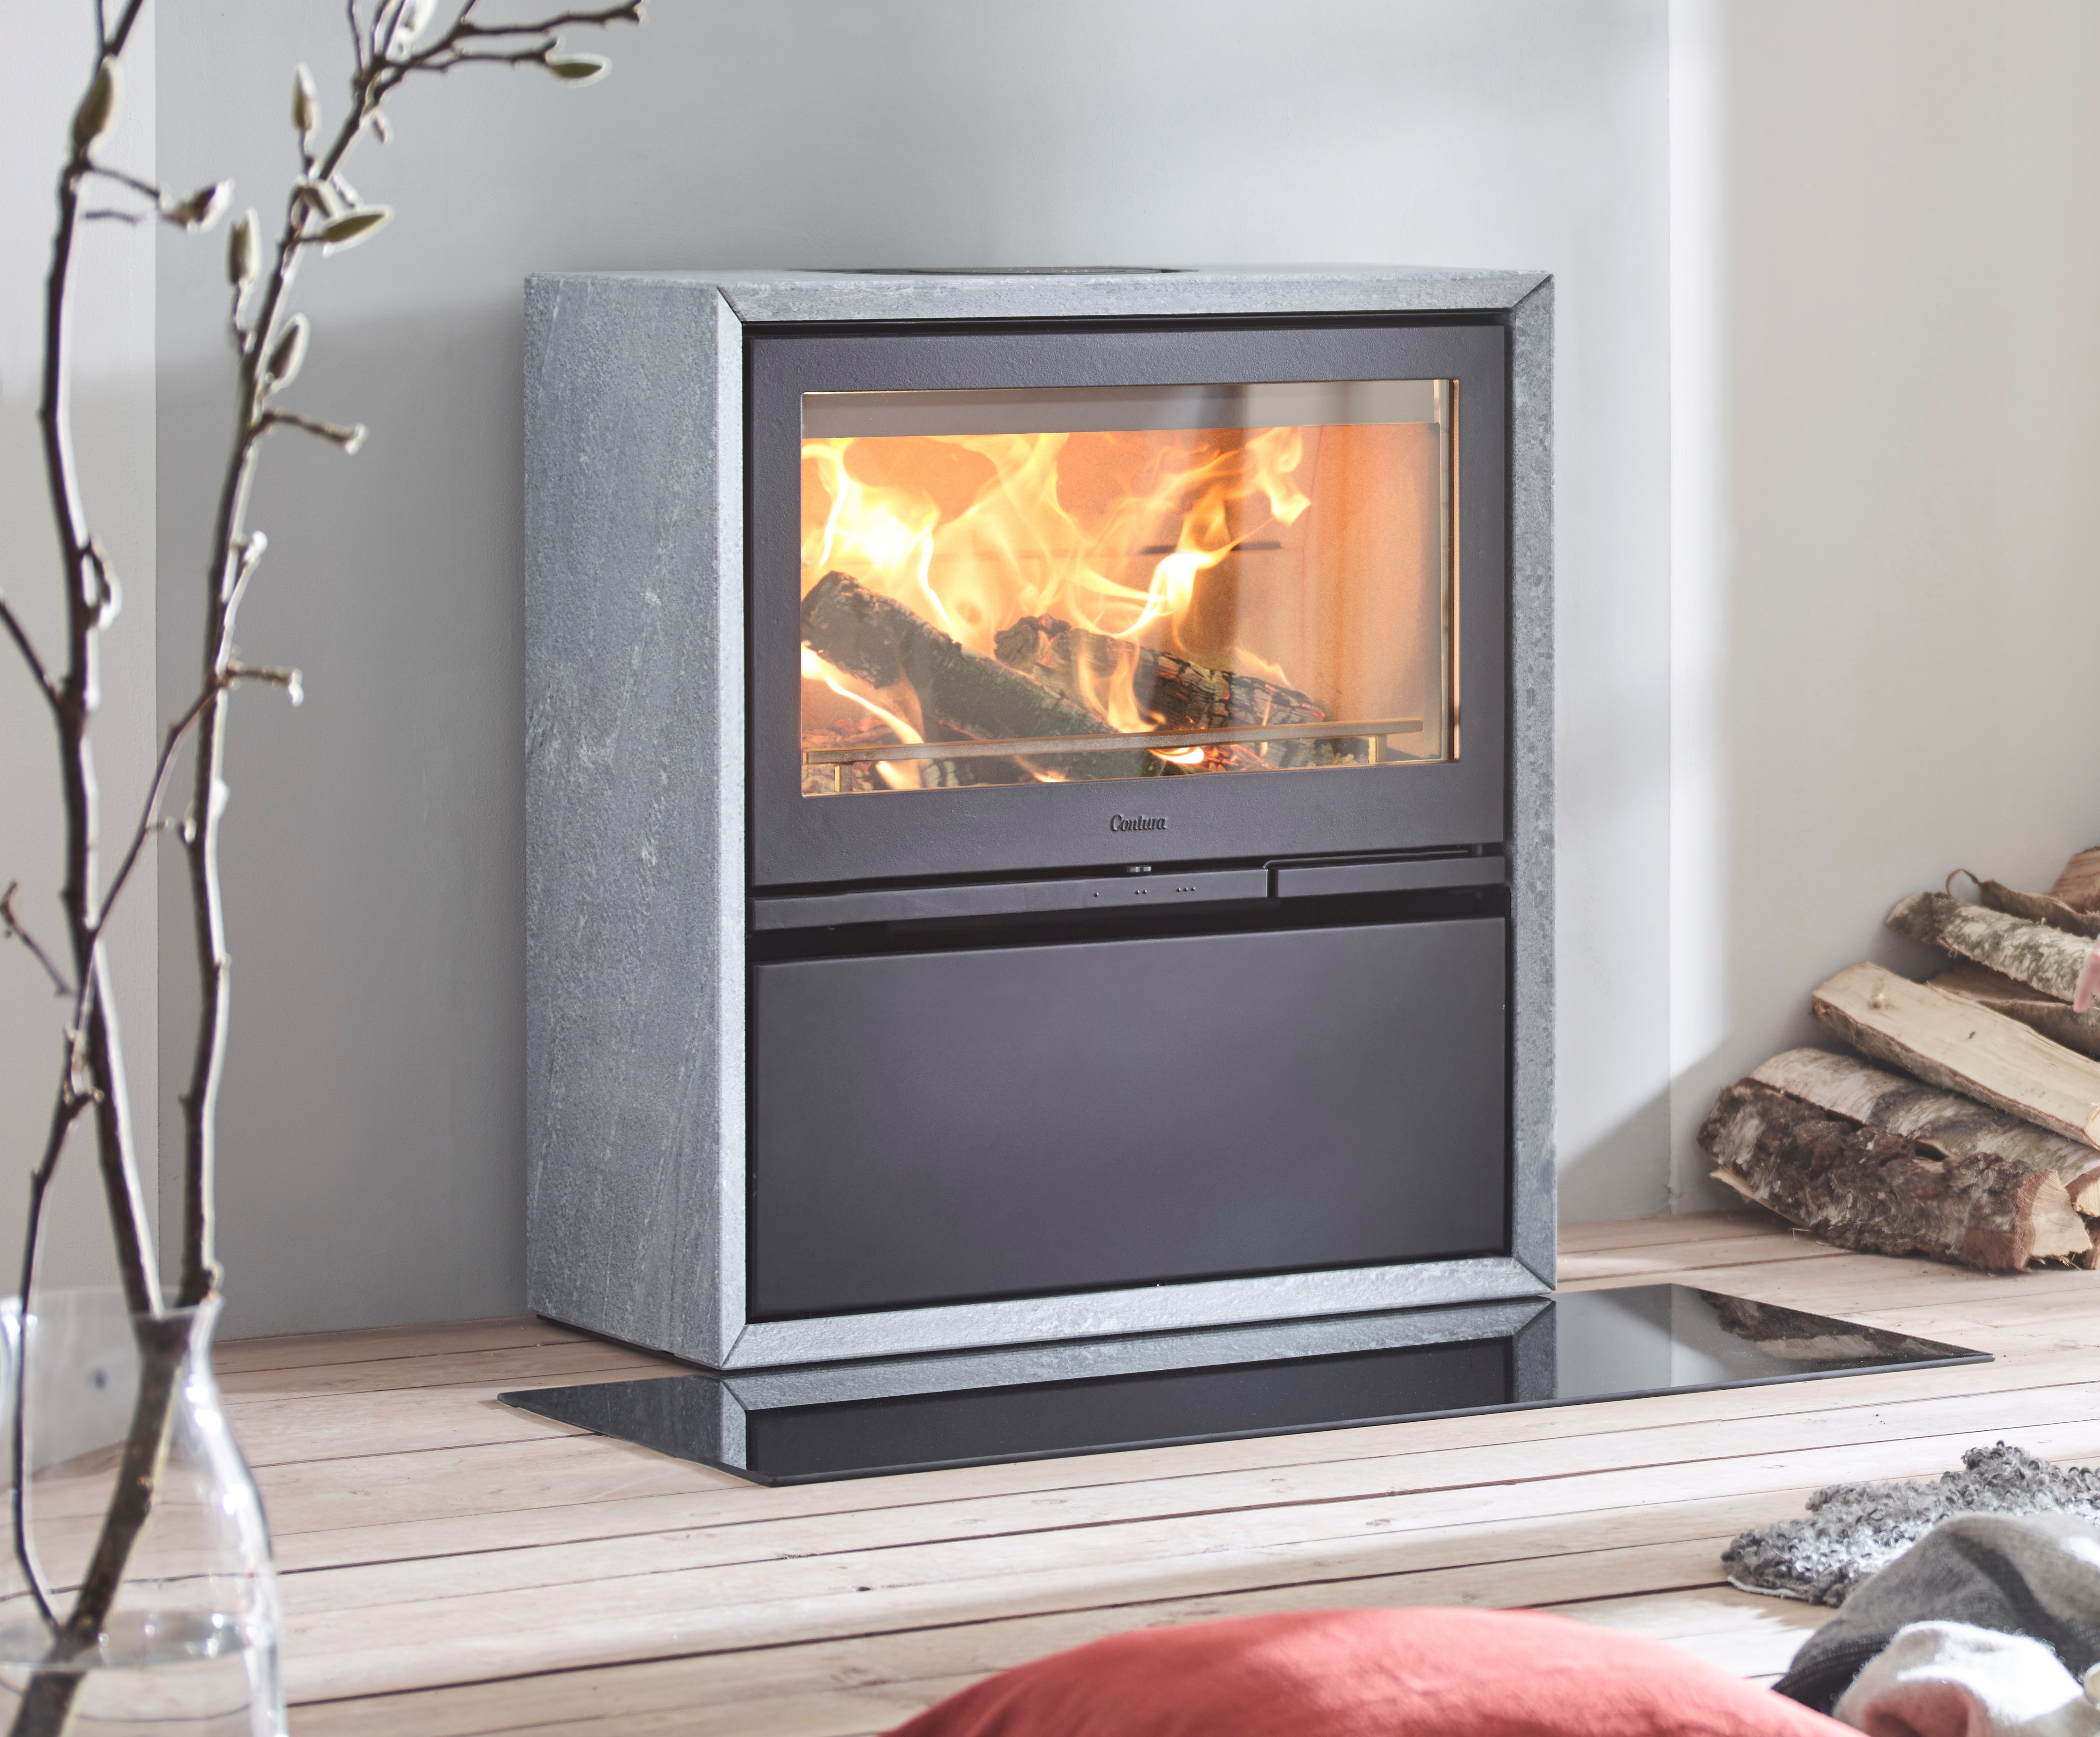 Contra 320 Wood Stove in Art Stone on Displat at our Showroom In Bury St Edmunds